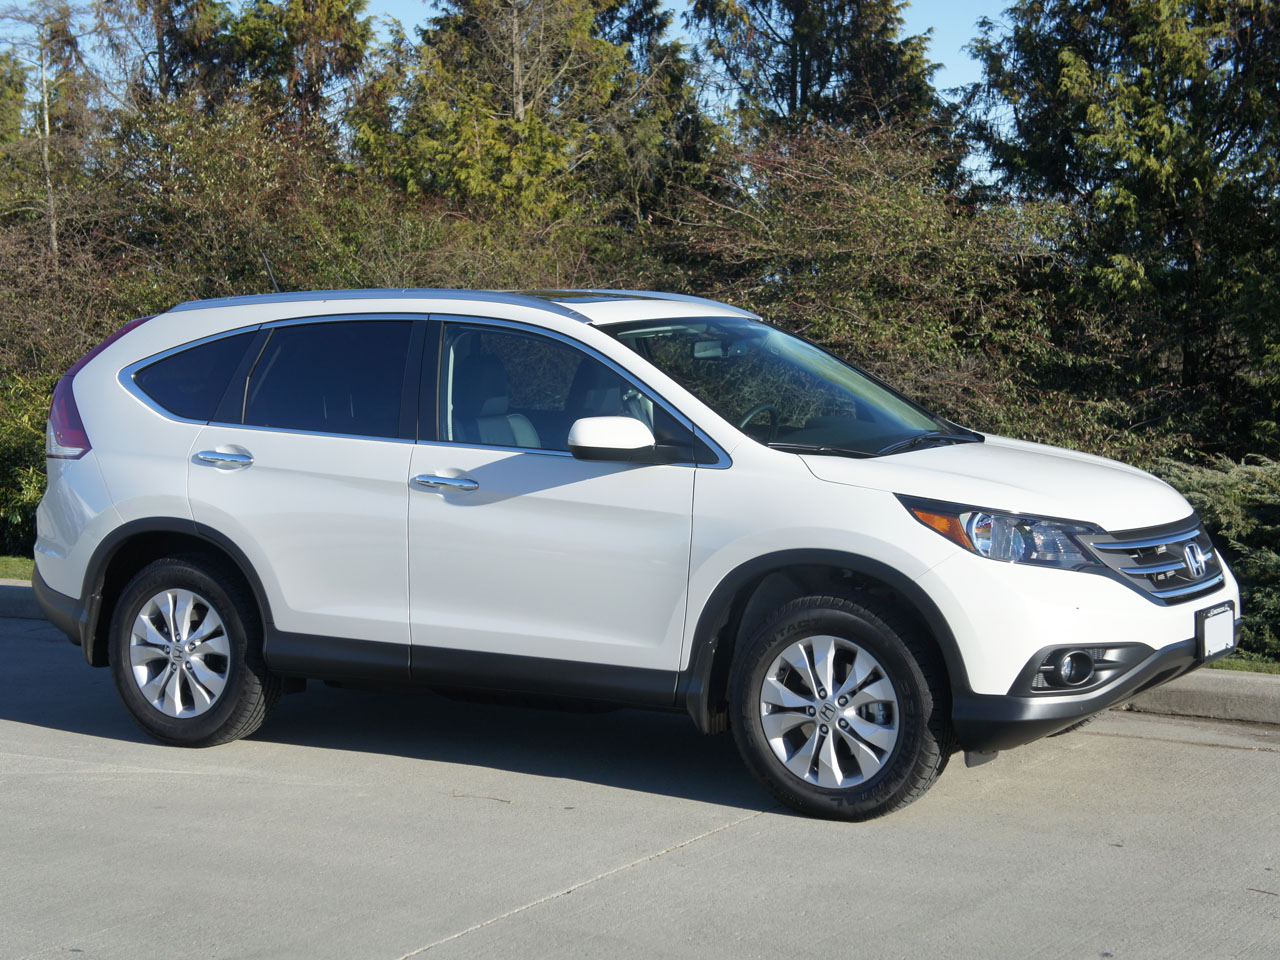 Honda CRV Touring Road Test Review CarCostCanada - Invoice price for 2014 honda crv